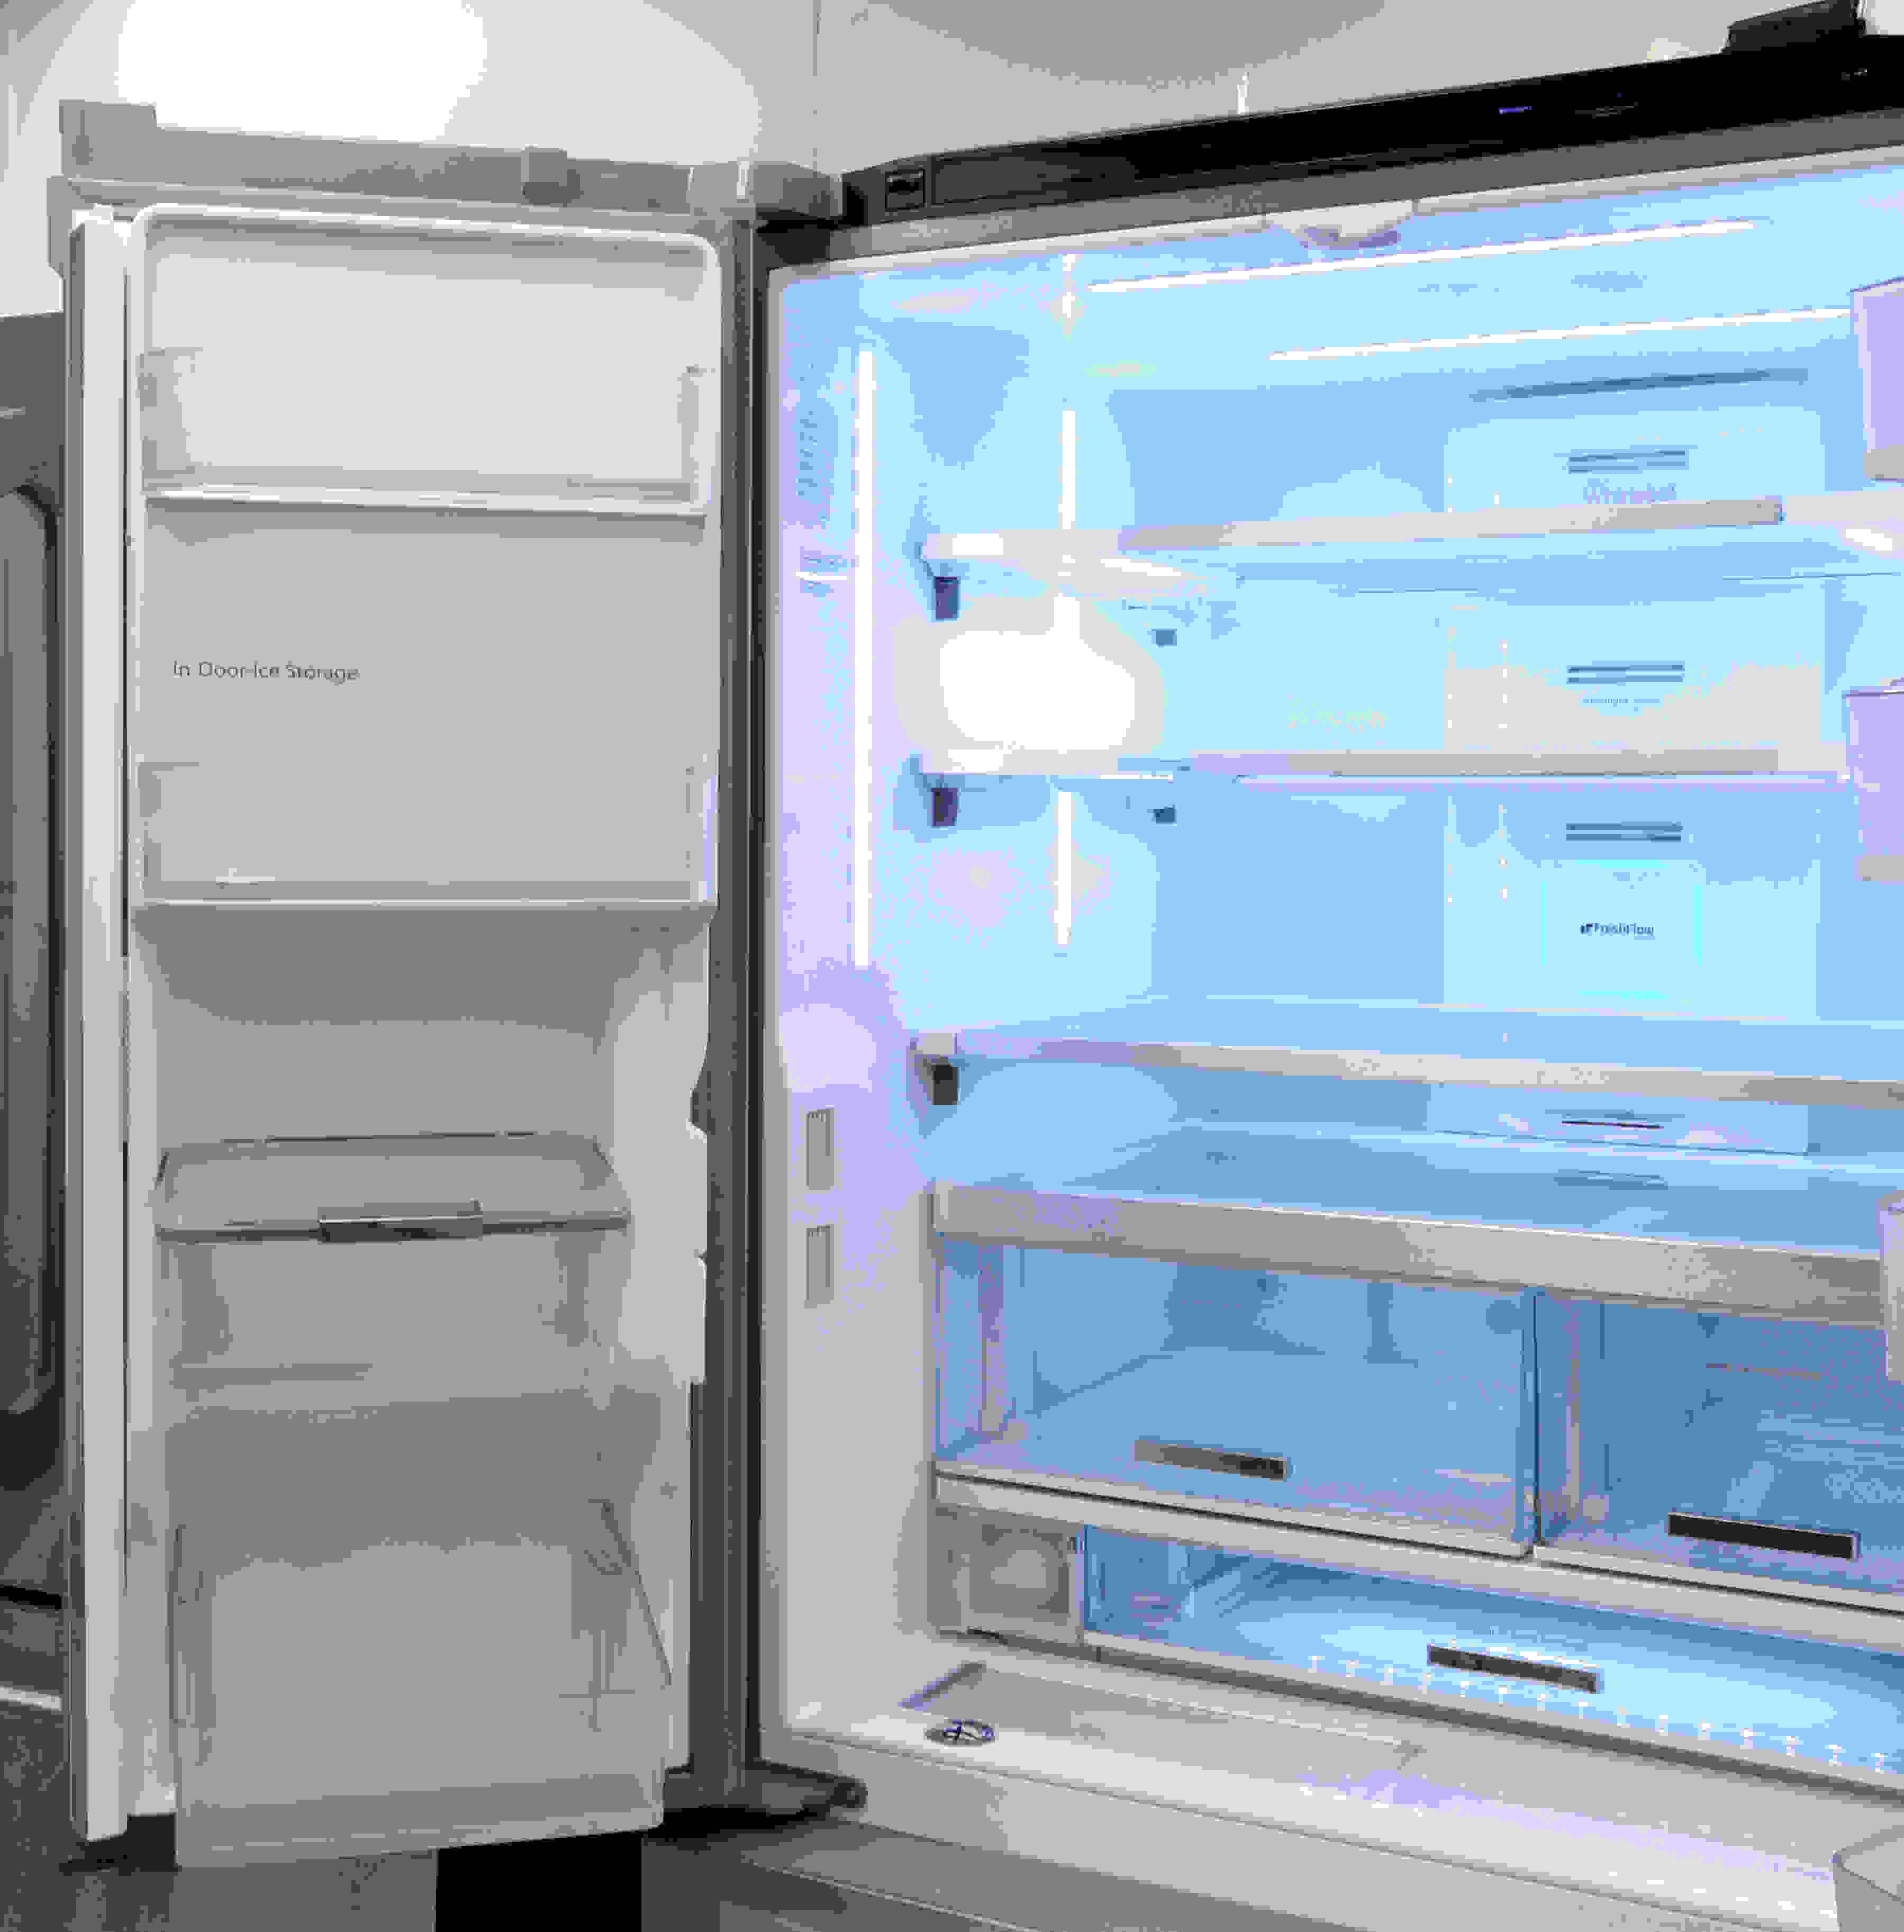 The slim ice maker is found on the left door, which features additional shelves.